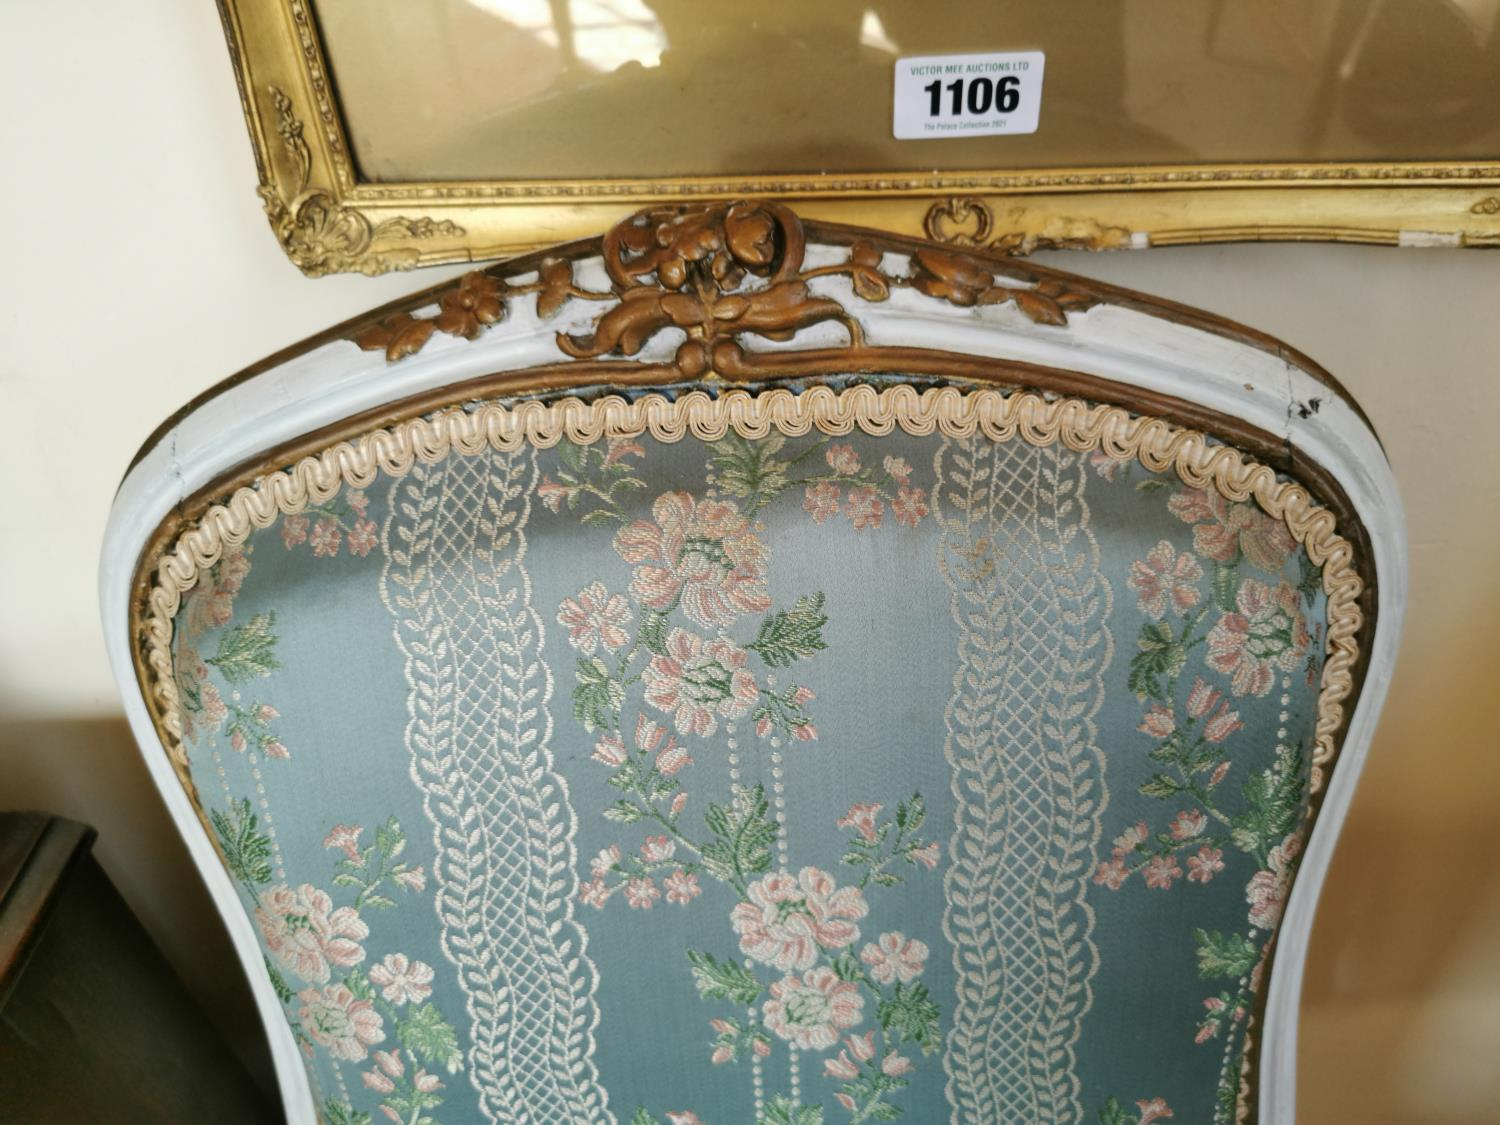 Pair of 19th C. giltwood French side chairs. - Image 3 of 3